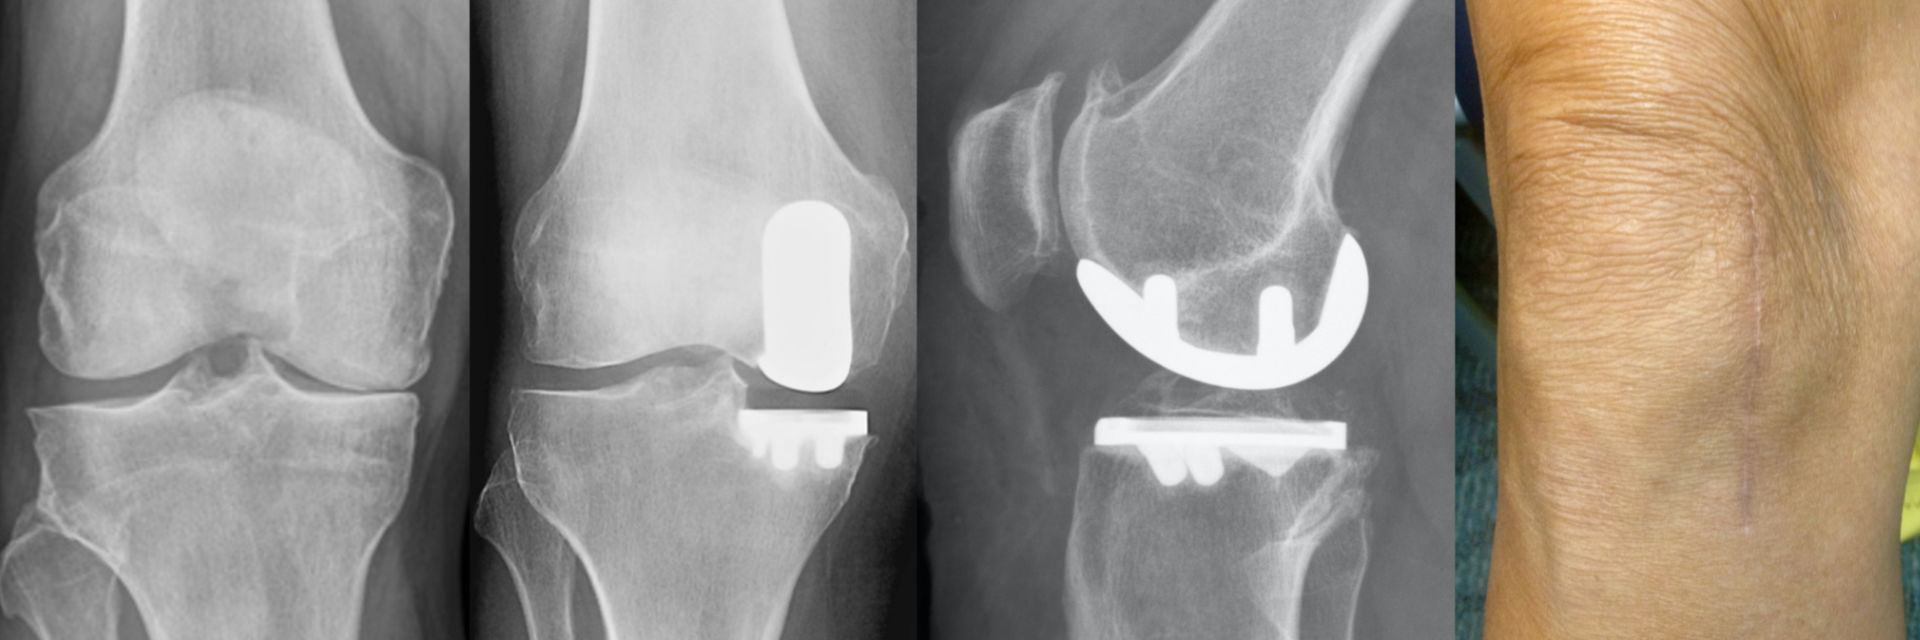 X-rays of patient's knee before and after medial partial knee replacement surgery.